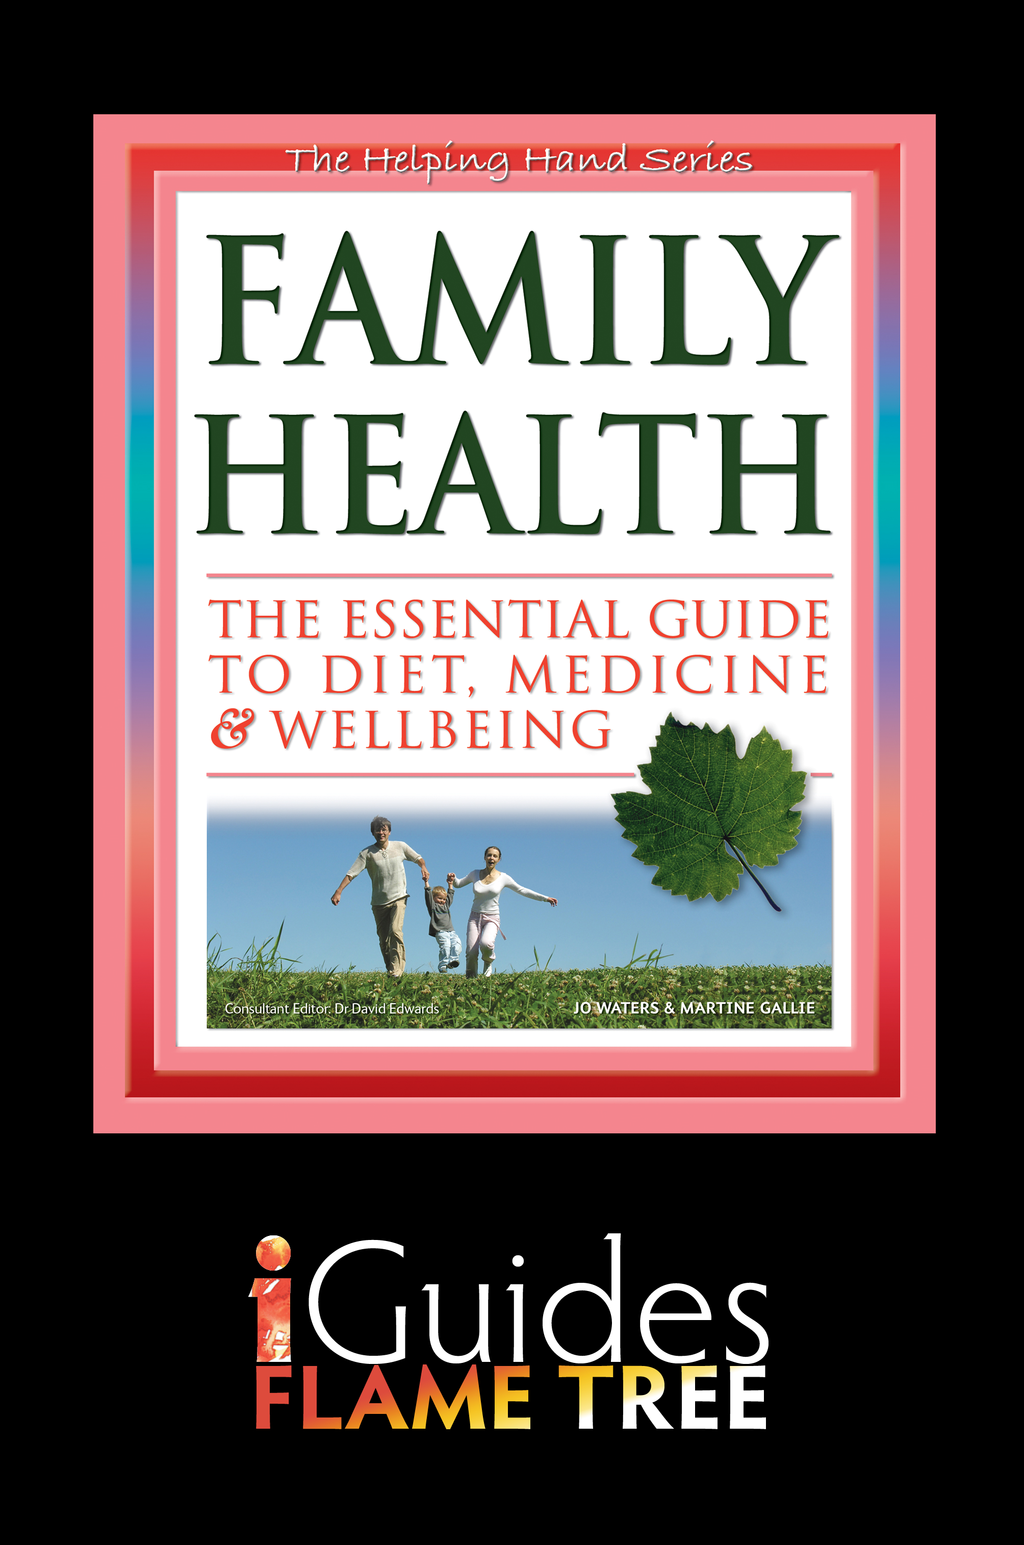 Family Health: The Essential Guide to Diet, Medicine & Wellbeing By: Flame Tree iGuides,Jo Waters,Martine Gallie